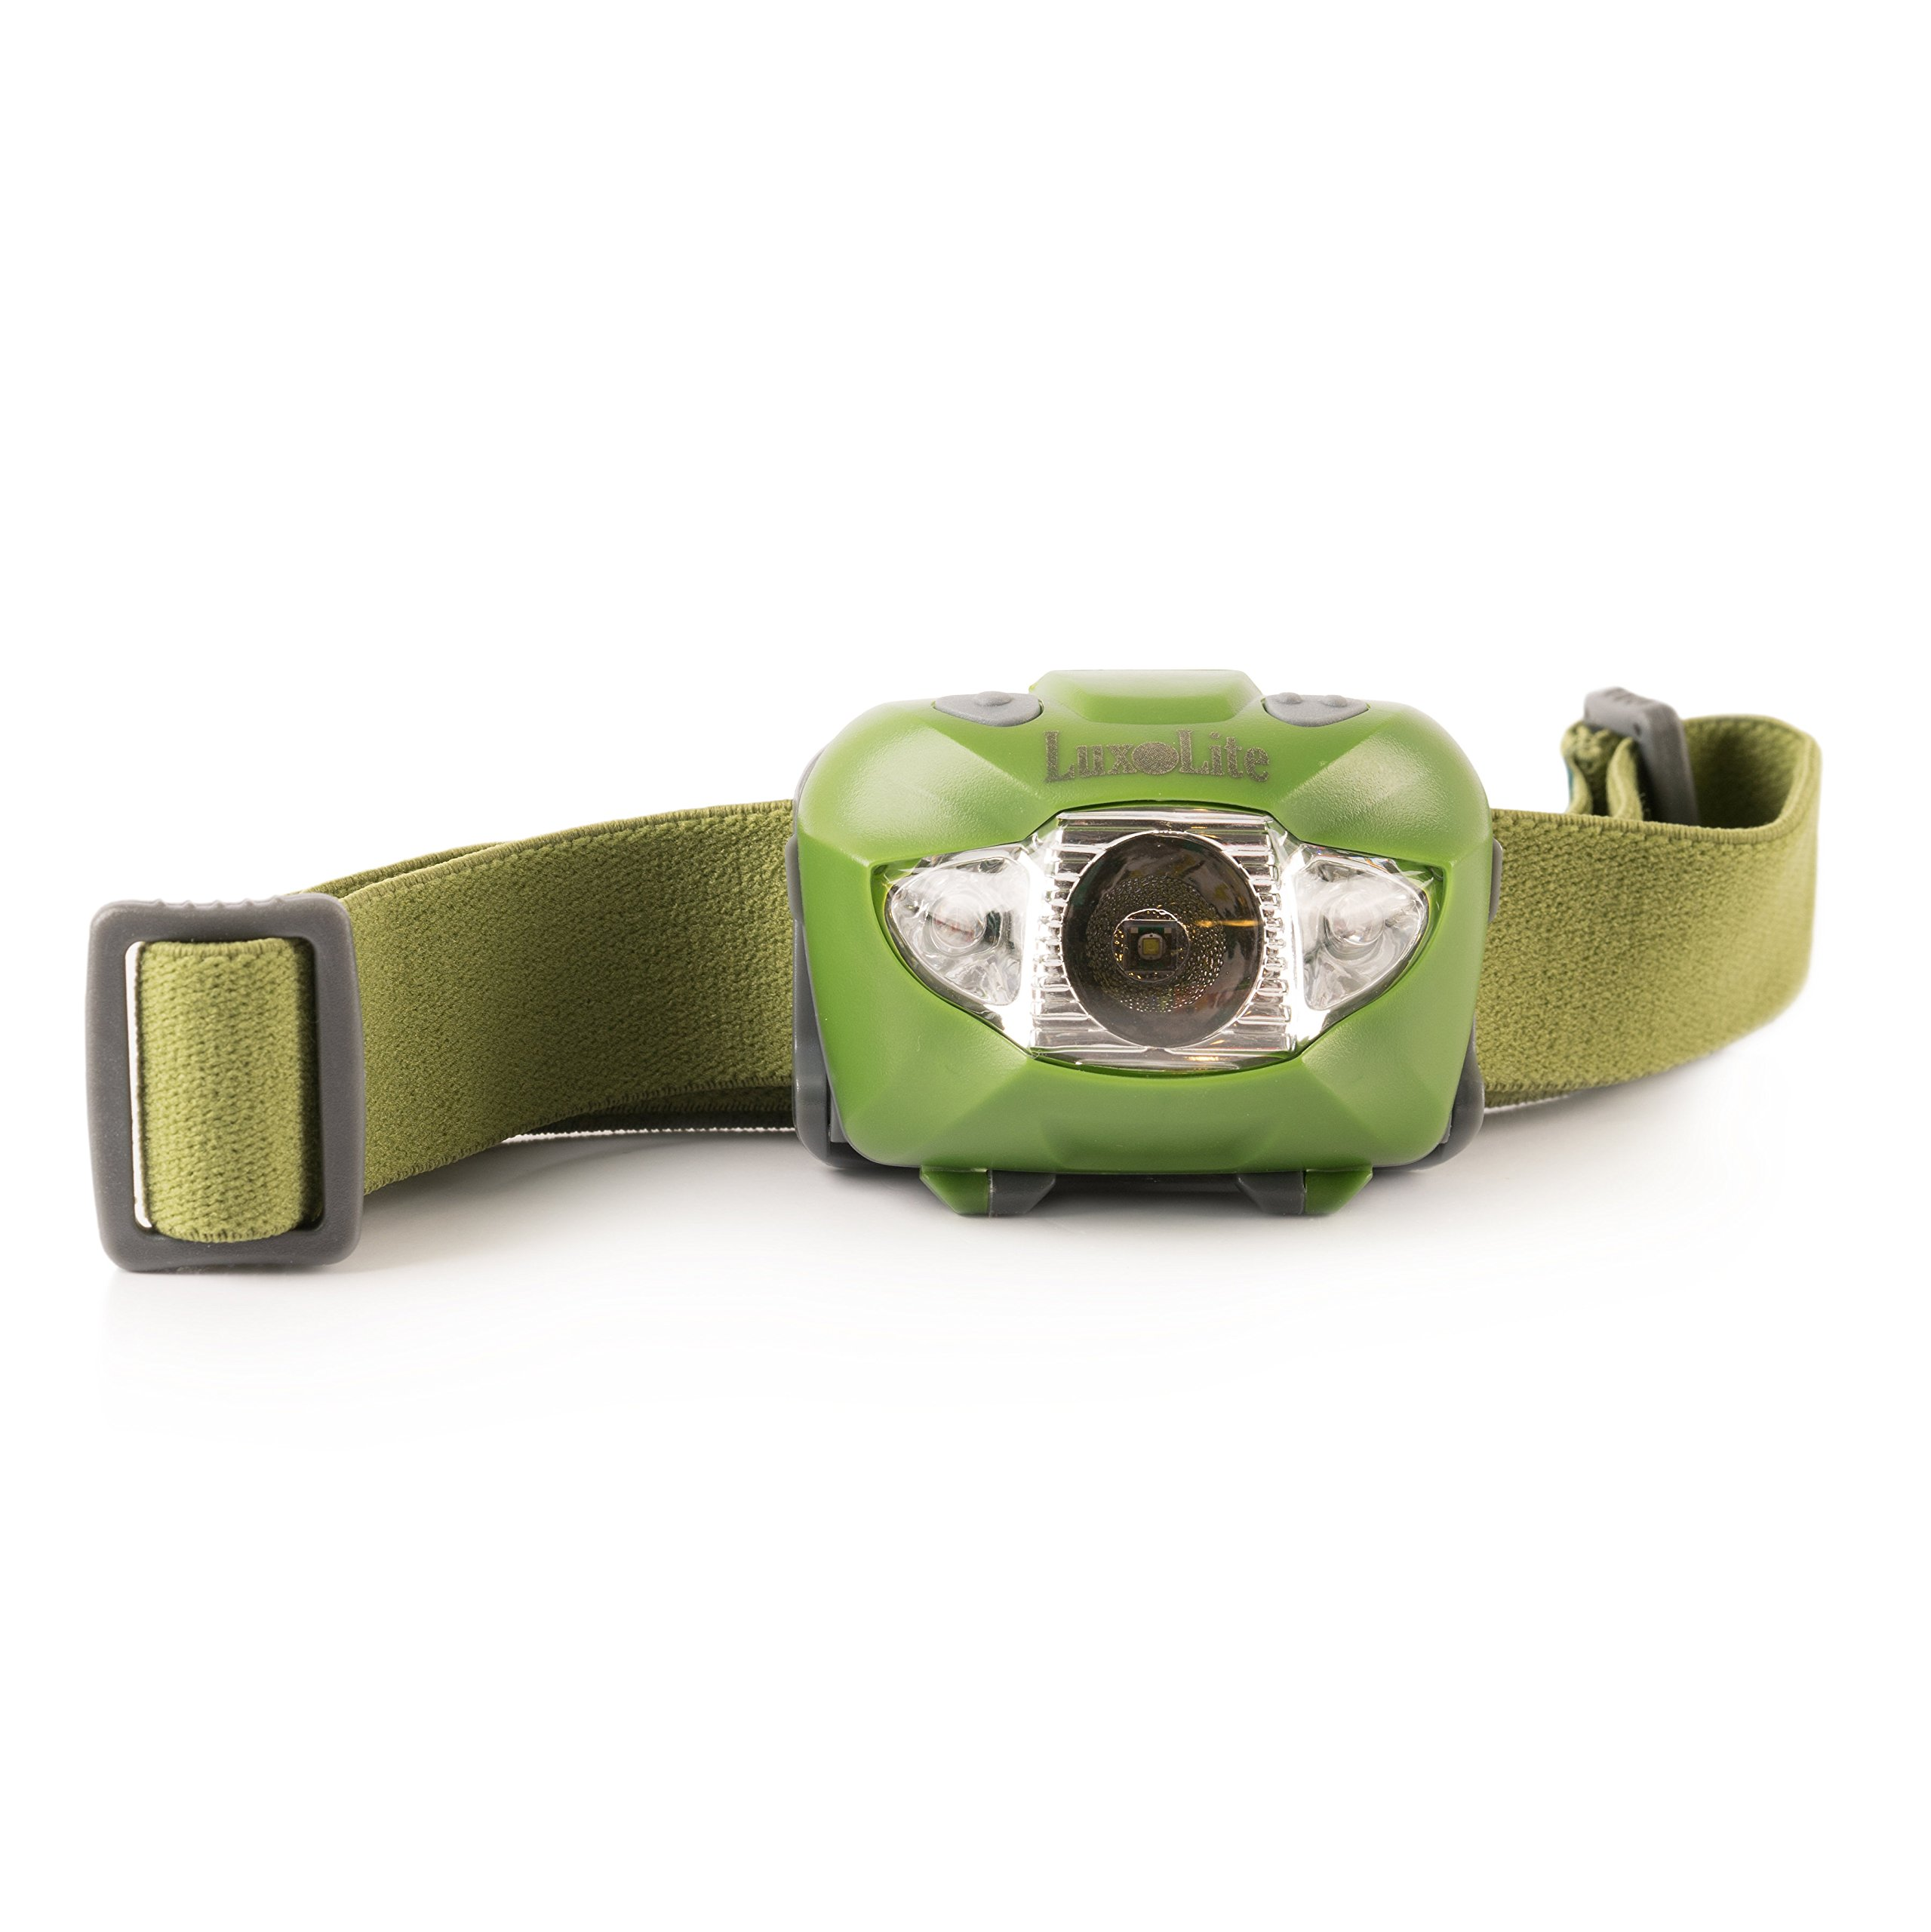 Led Headlamp Flashlight With Red Light Super Bright Headlight For Camping Hi.. 16